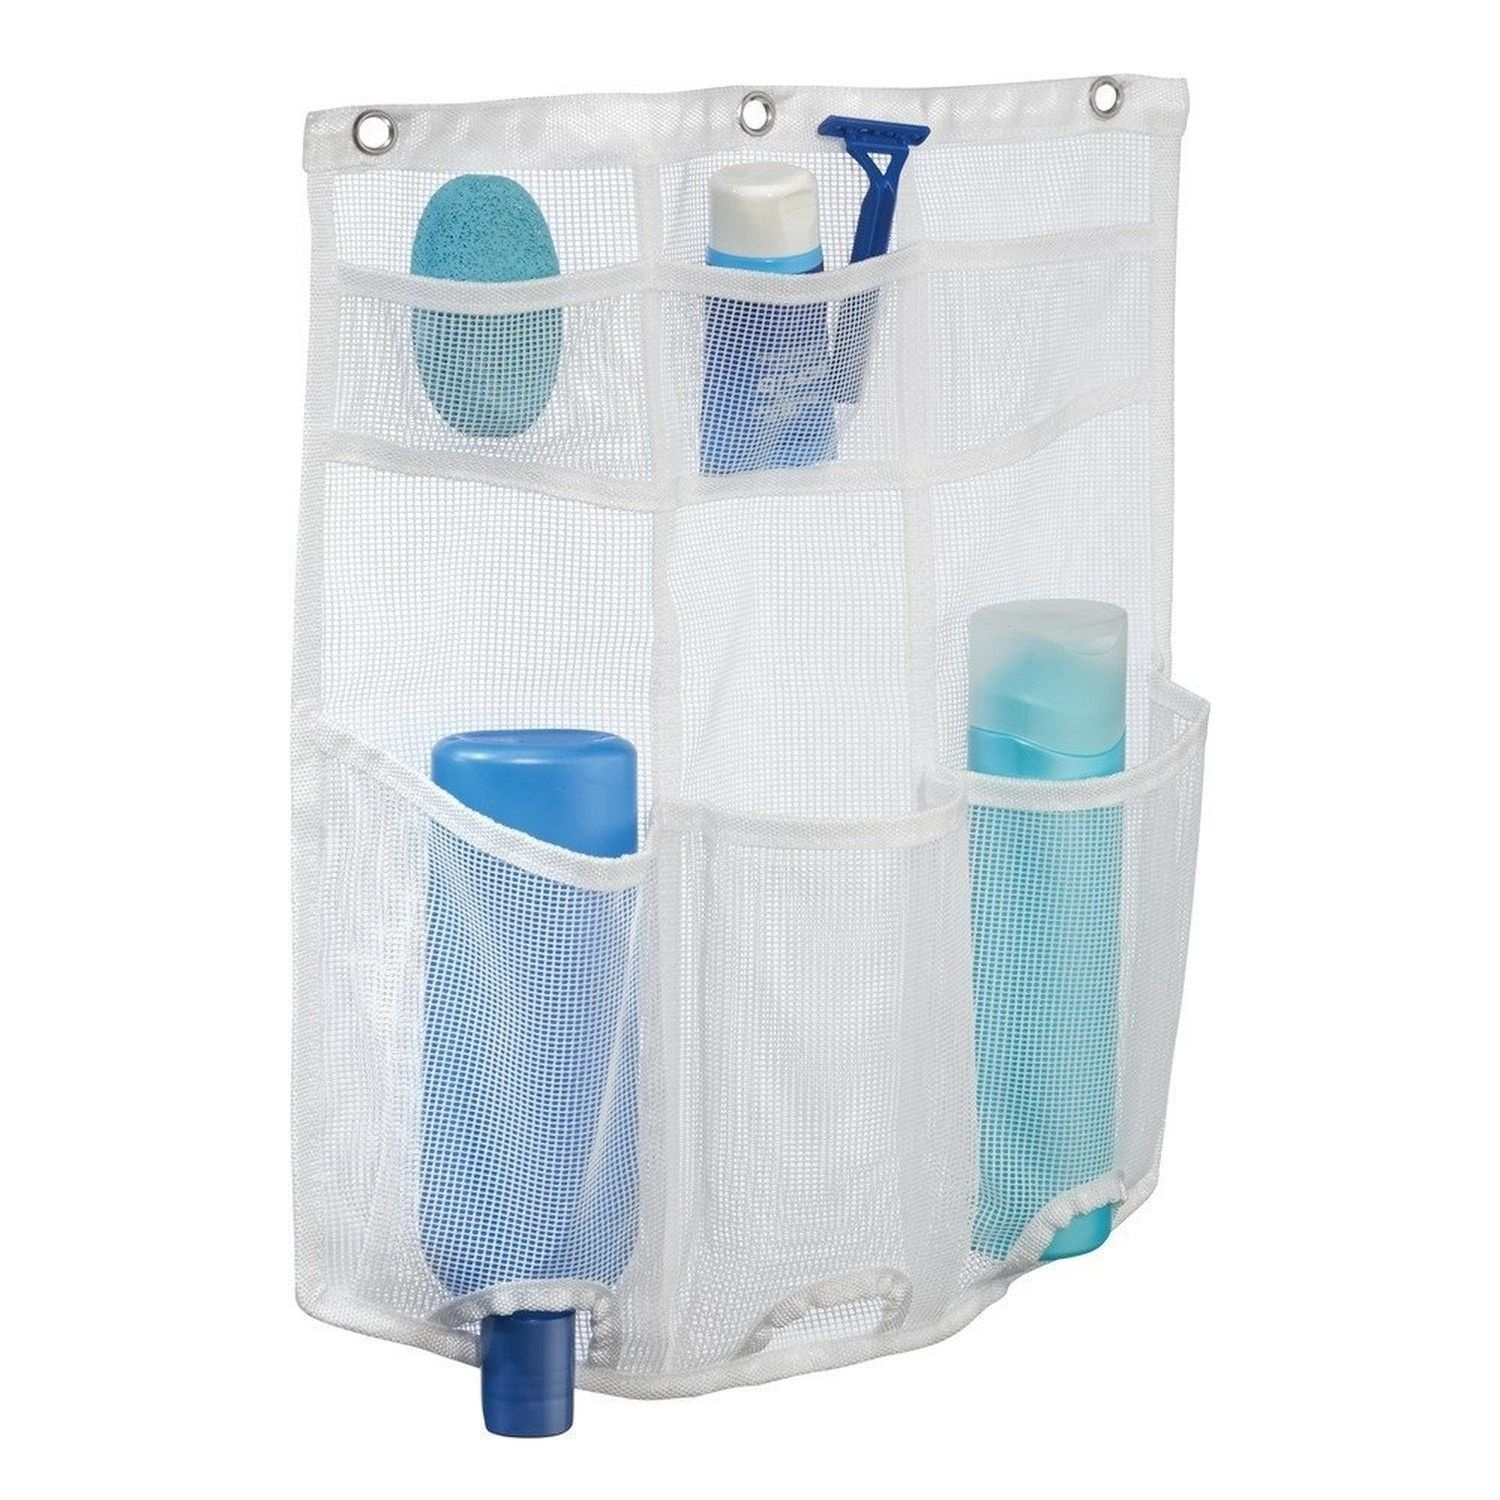 hanging shower caddy Homeware: Buy Online from Fishpond.co.nz